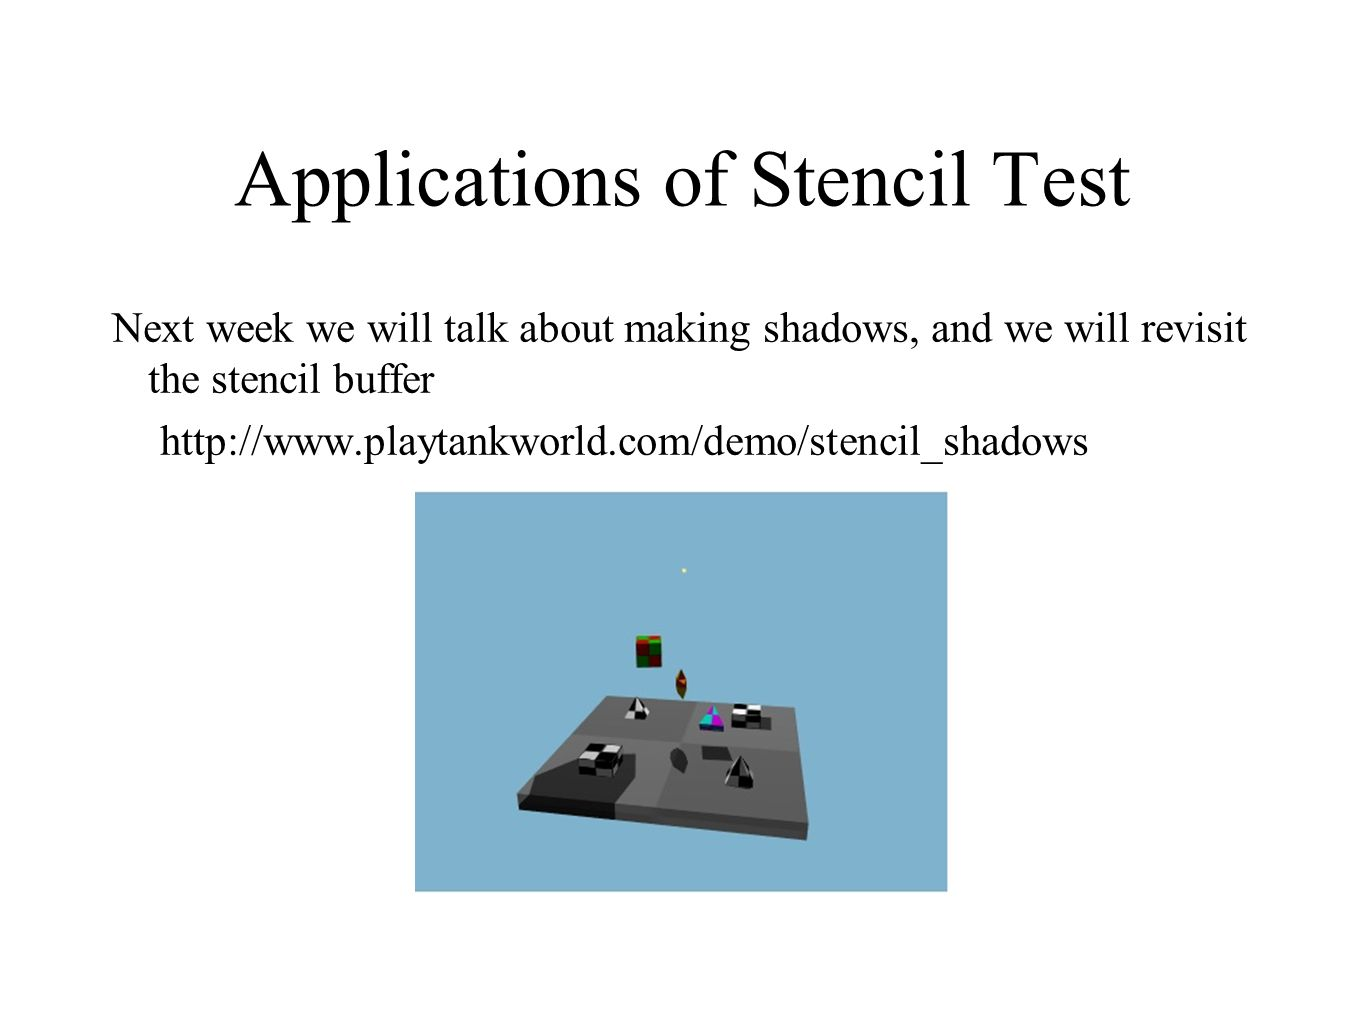 Applications of Stencil Test